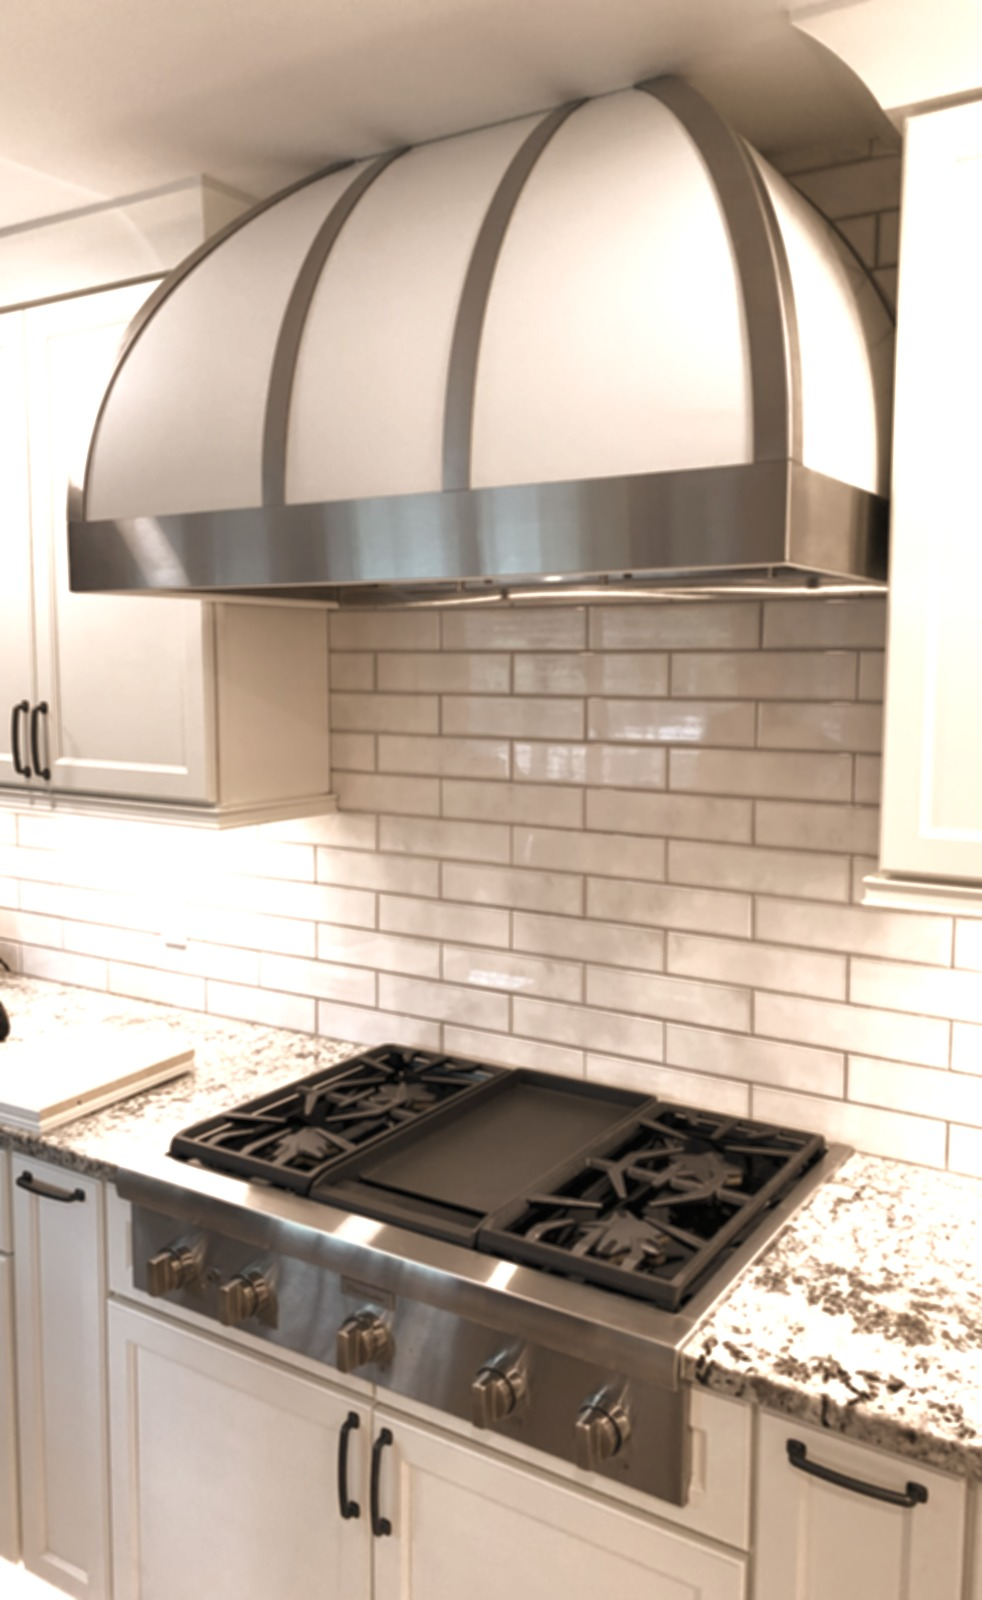 White Powder Coated Range Hood